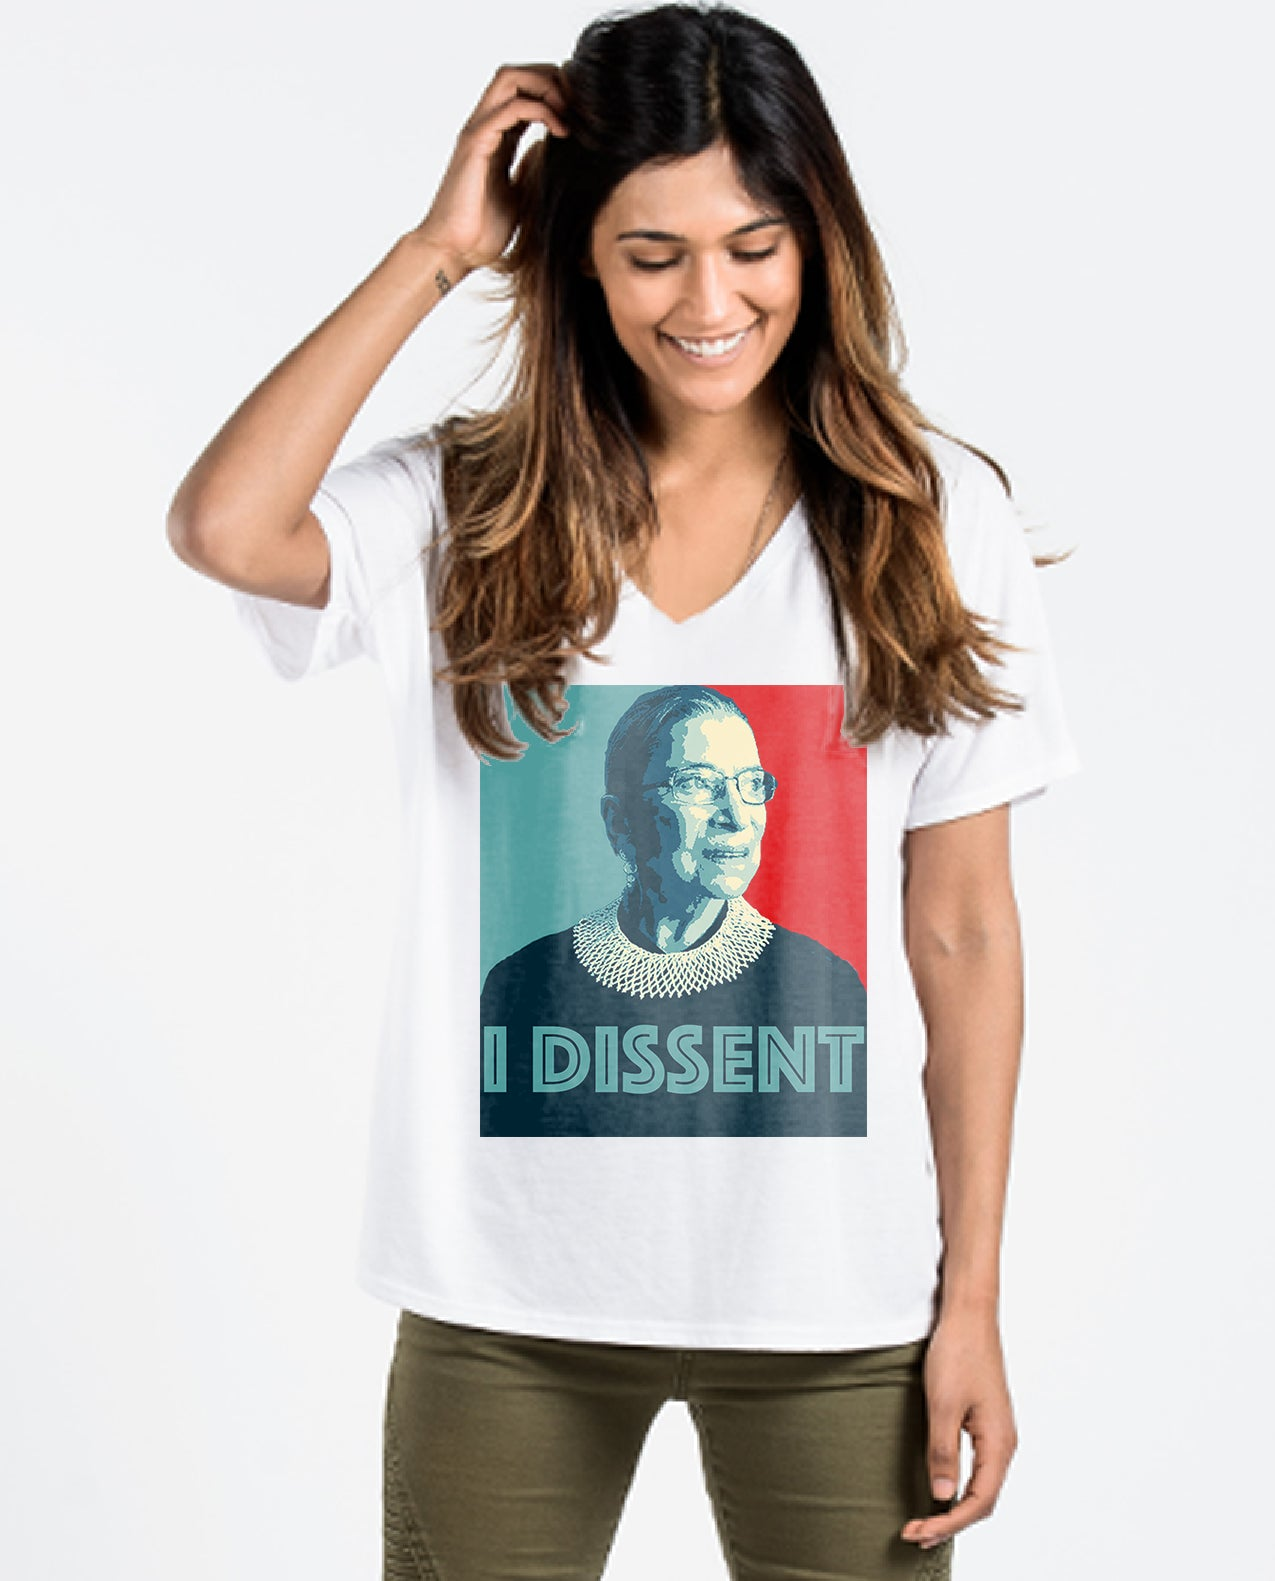 Ruth Bader Ginsberg I Dissent Women's Flowy Vneck